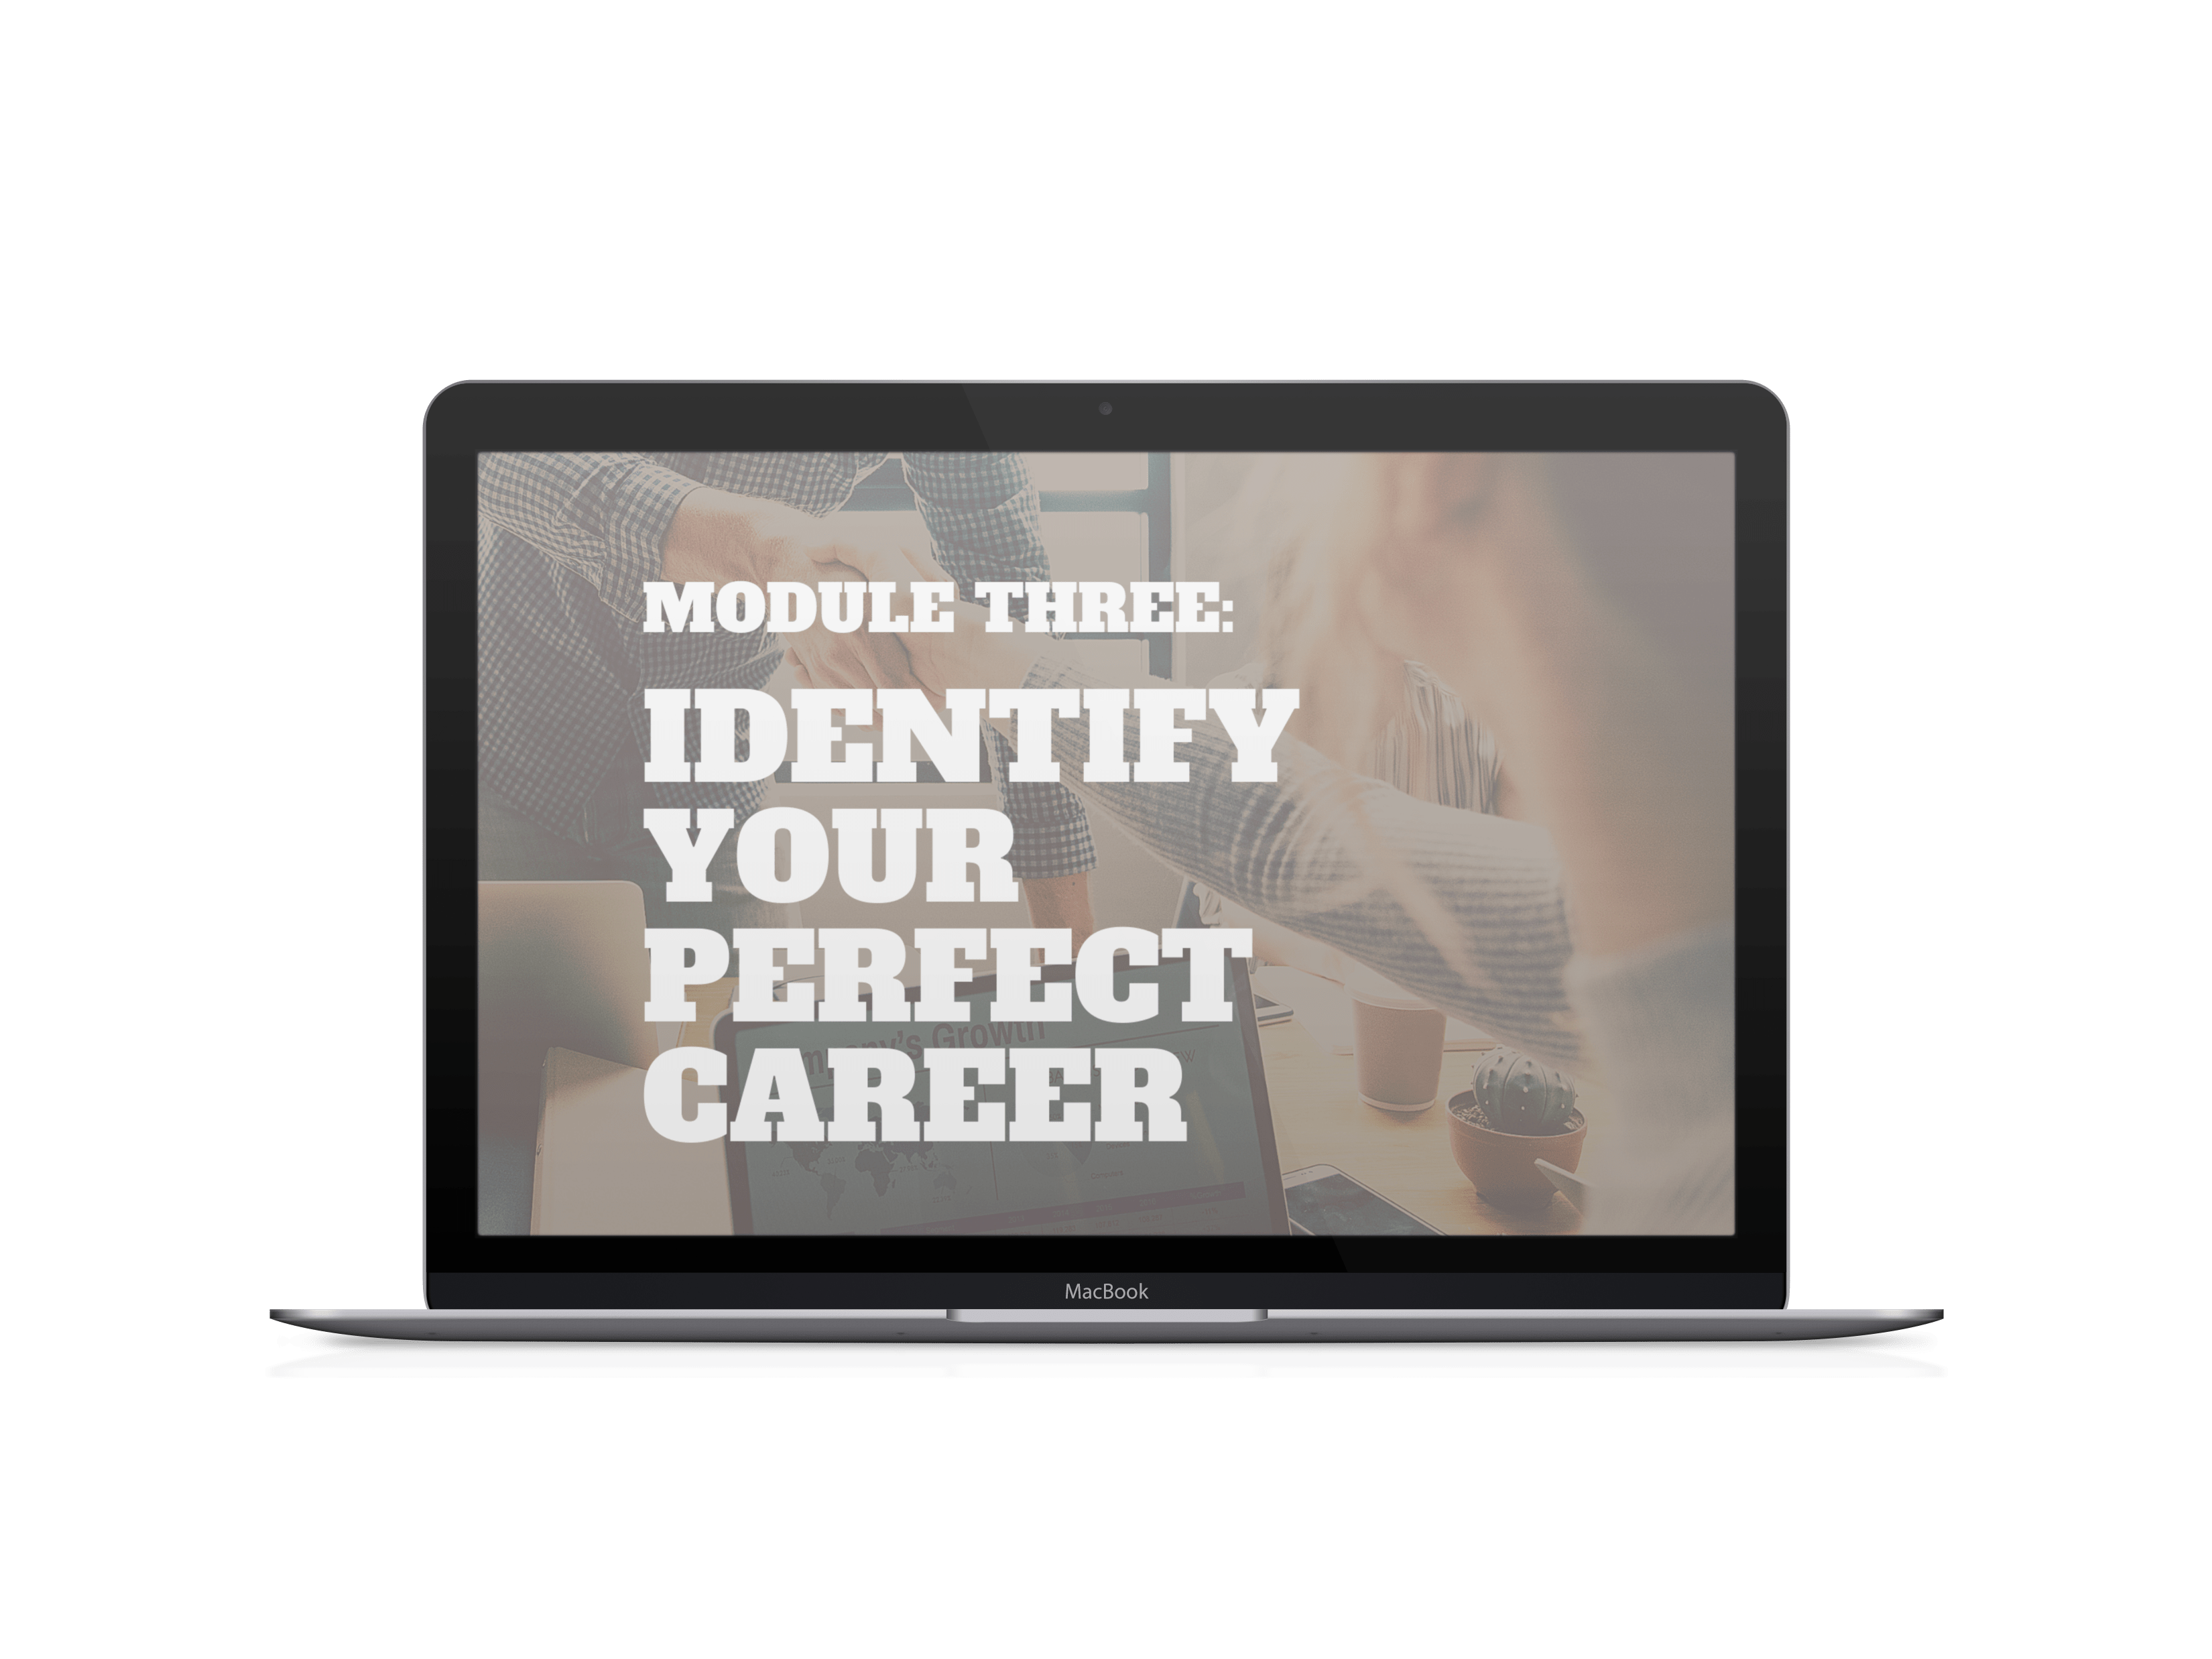 identify your perfect career